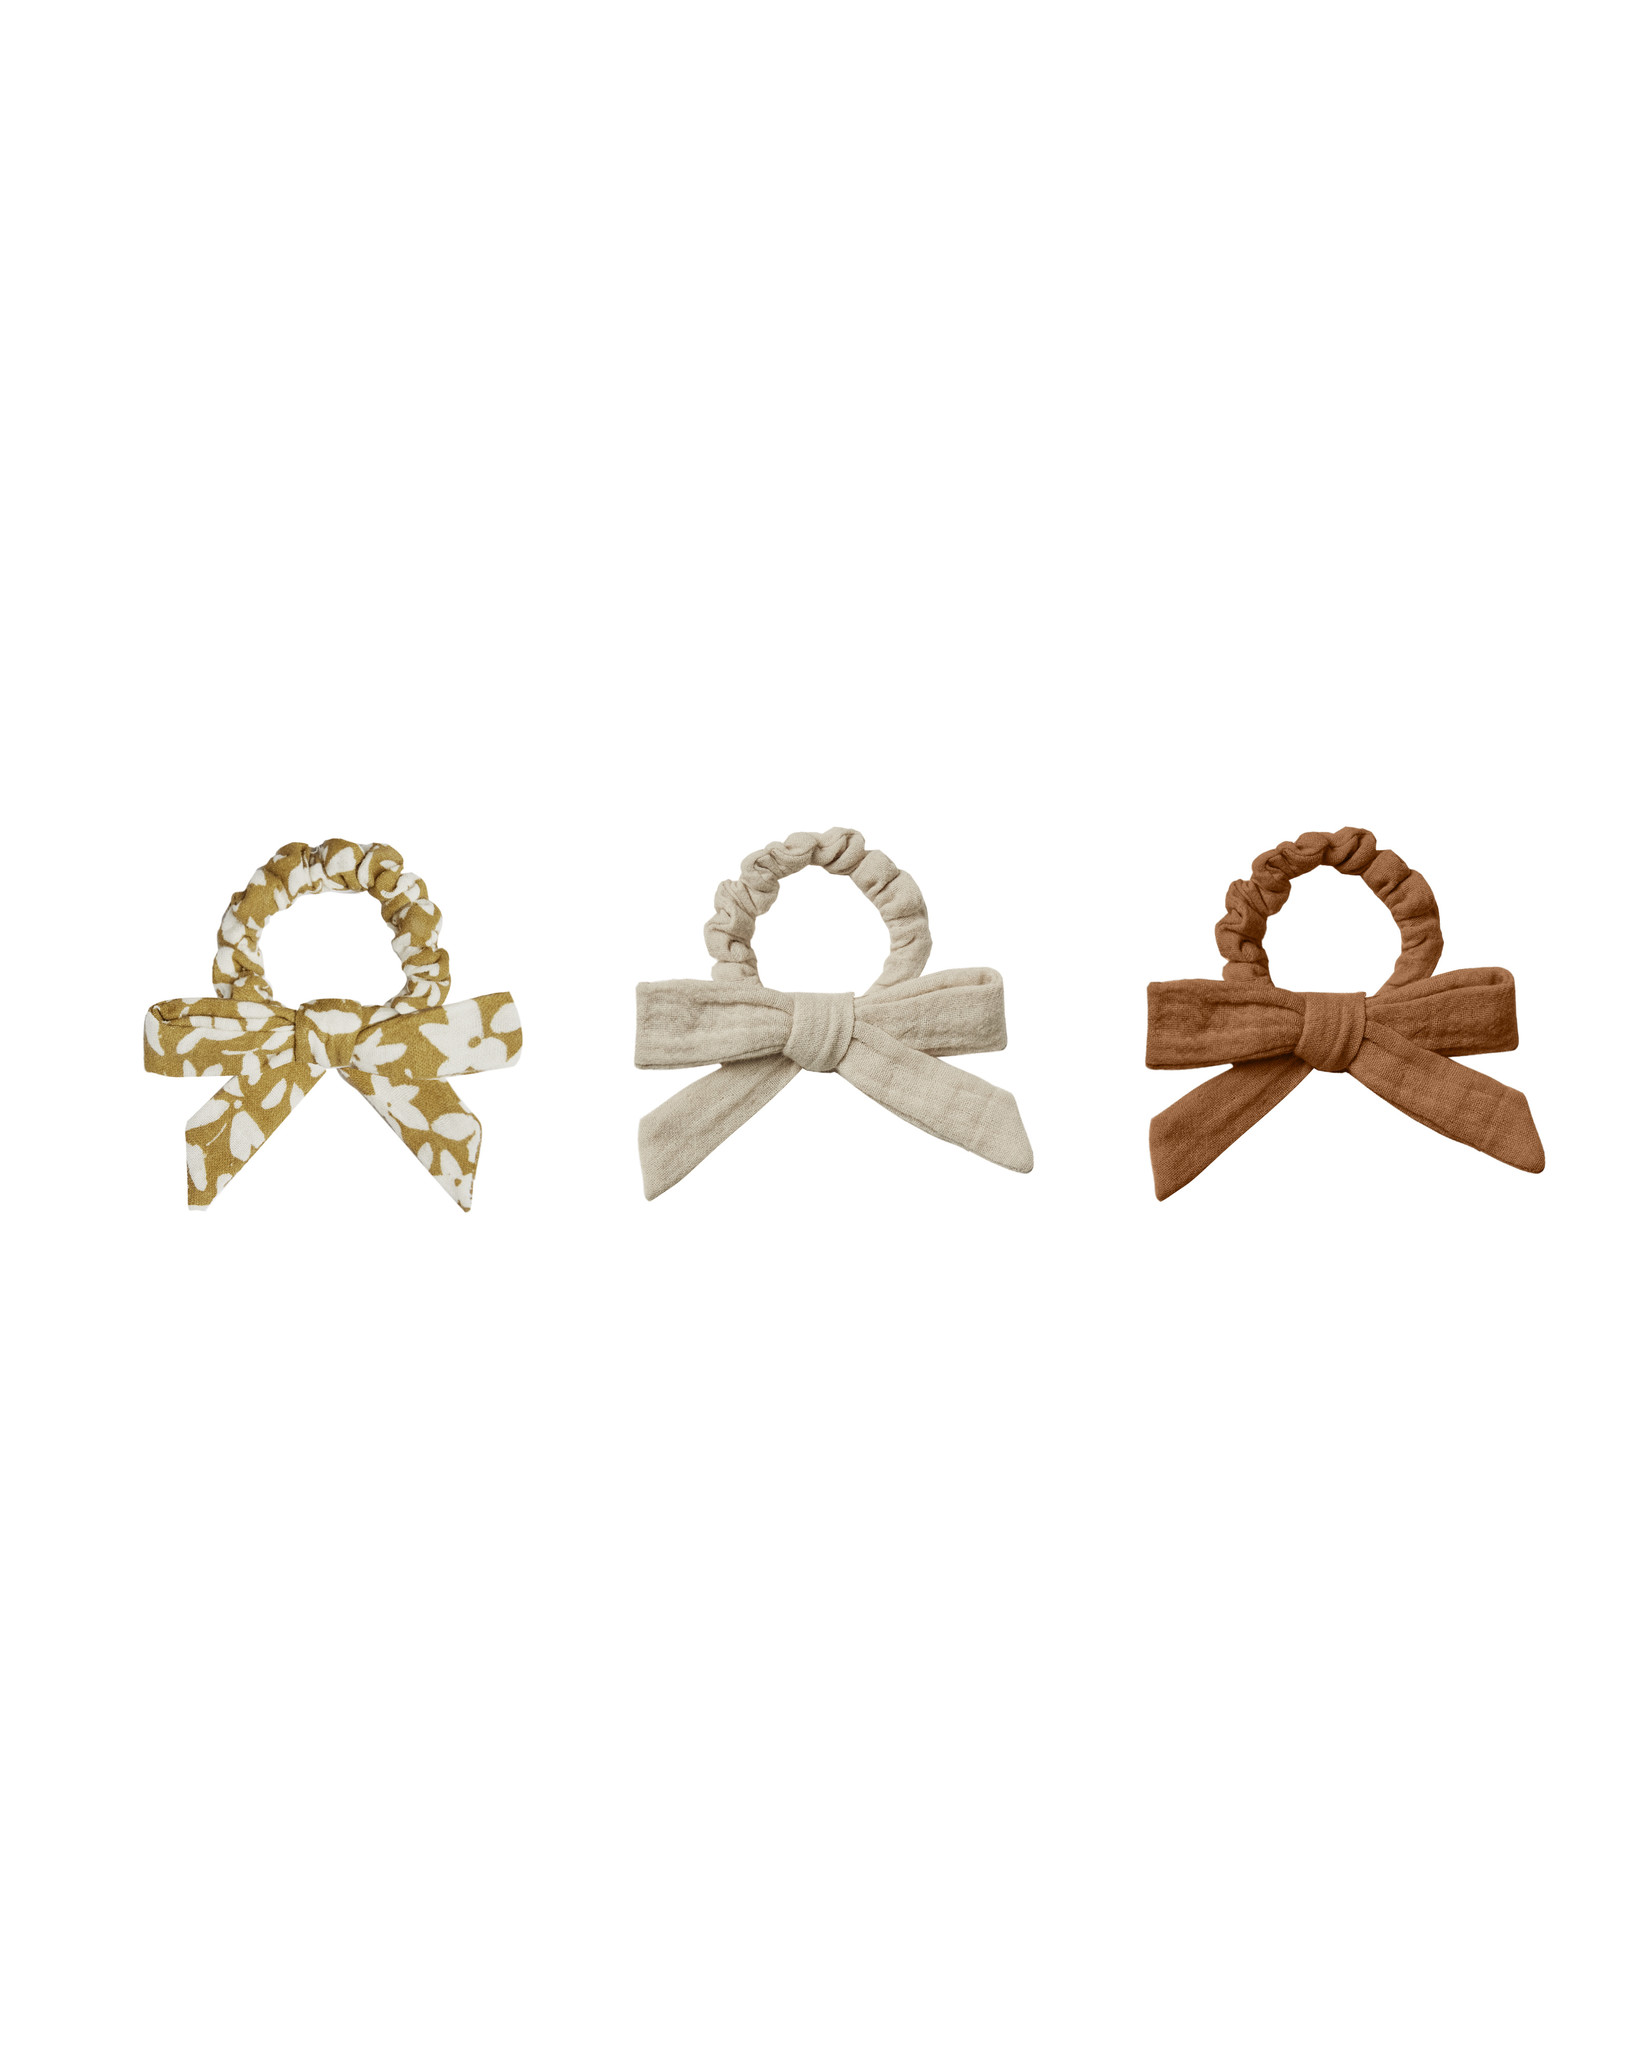 Rylee + Cru - RC RC BA - Little Bow Scrunchie Set in Rust, Gold, and Stone